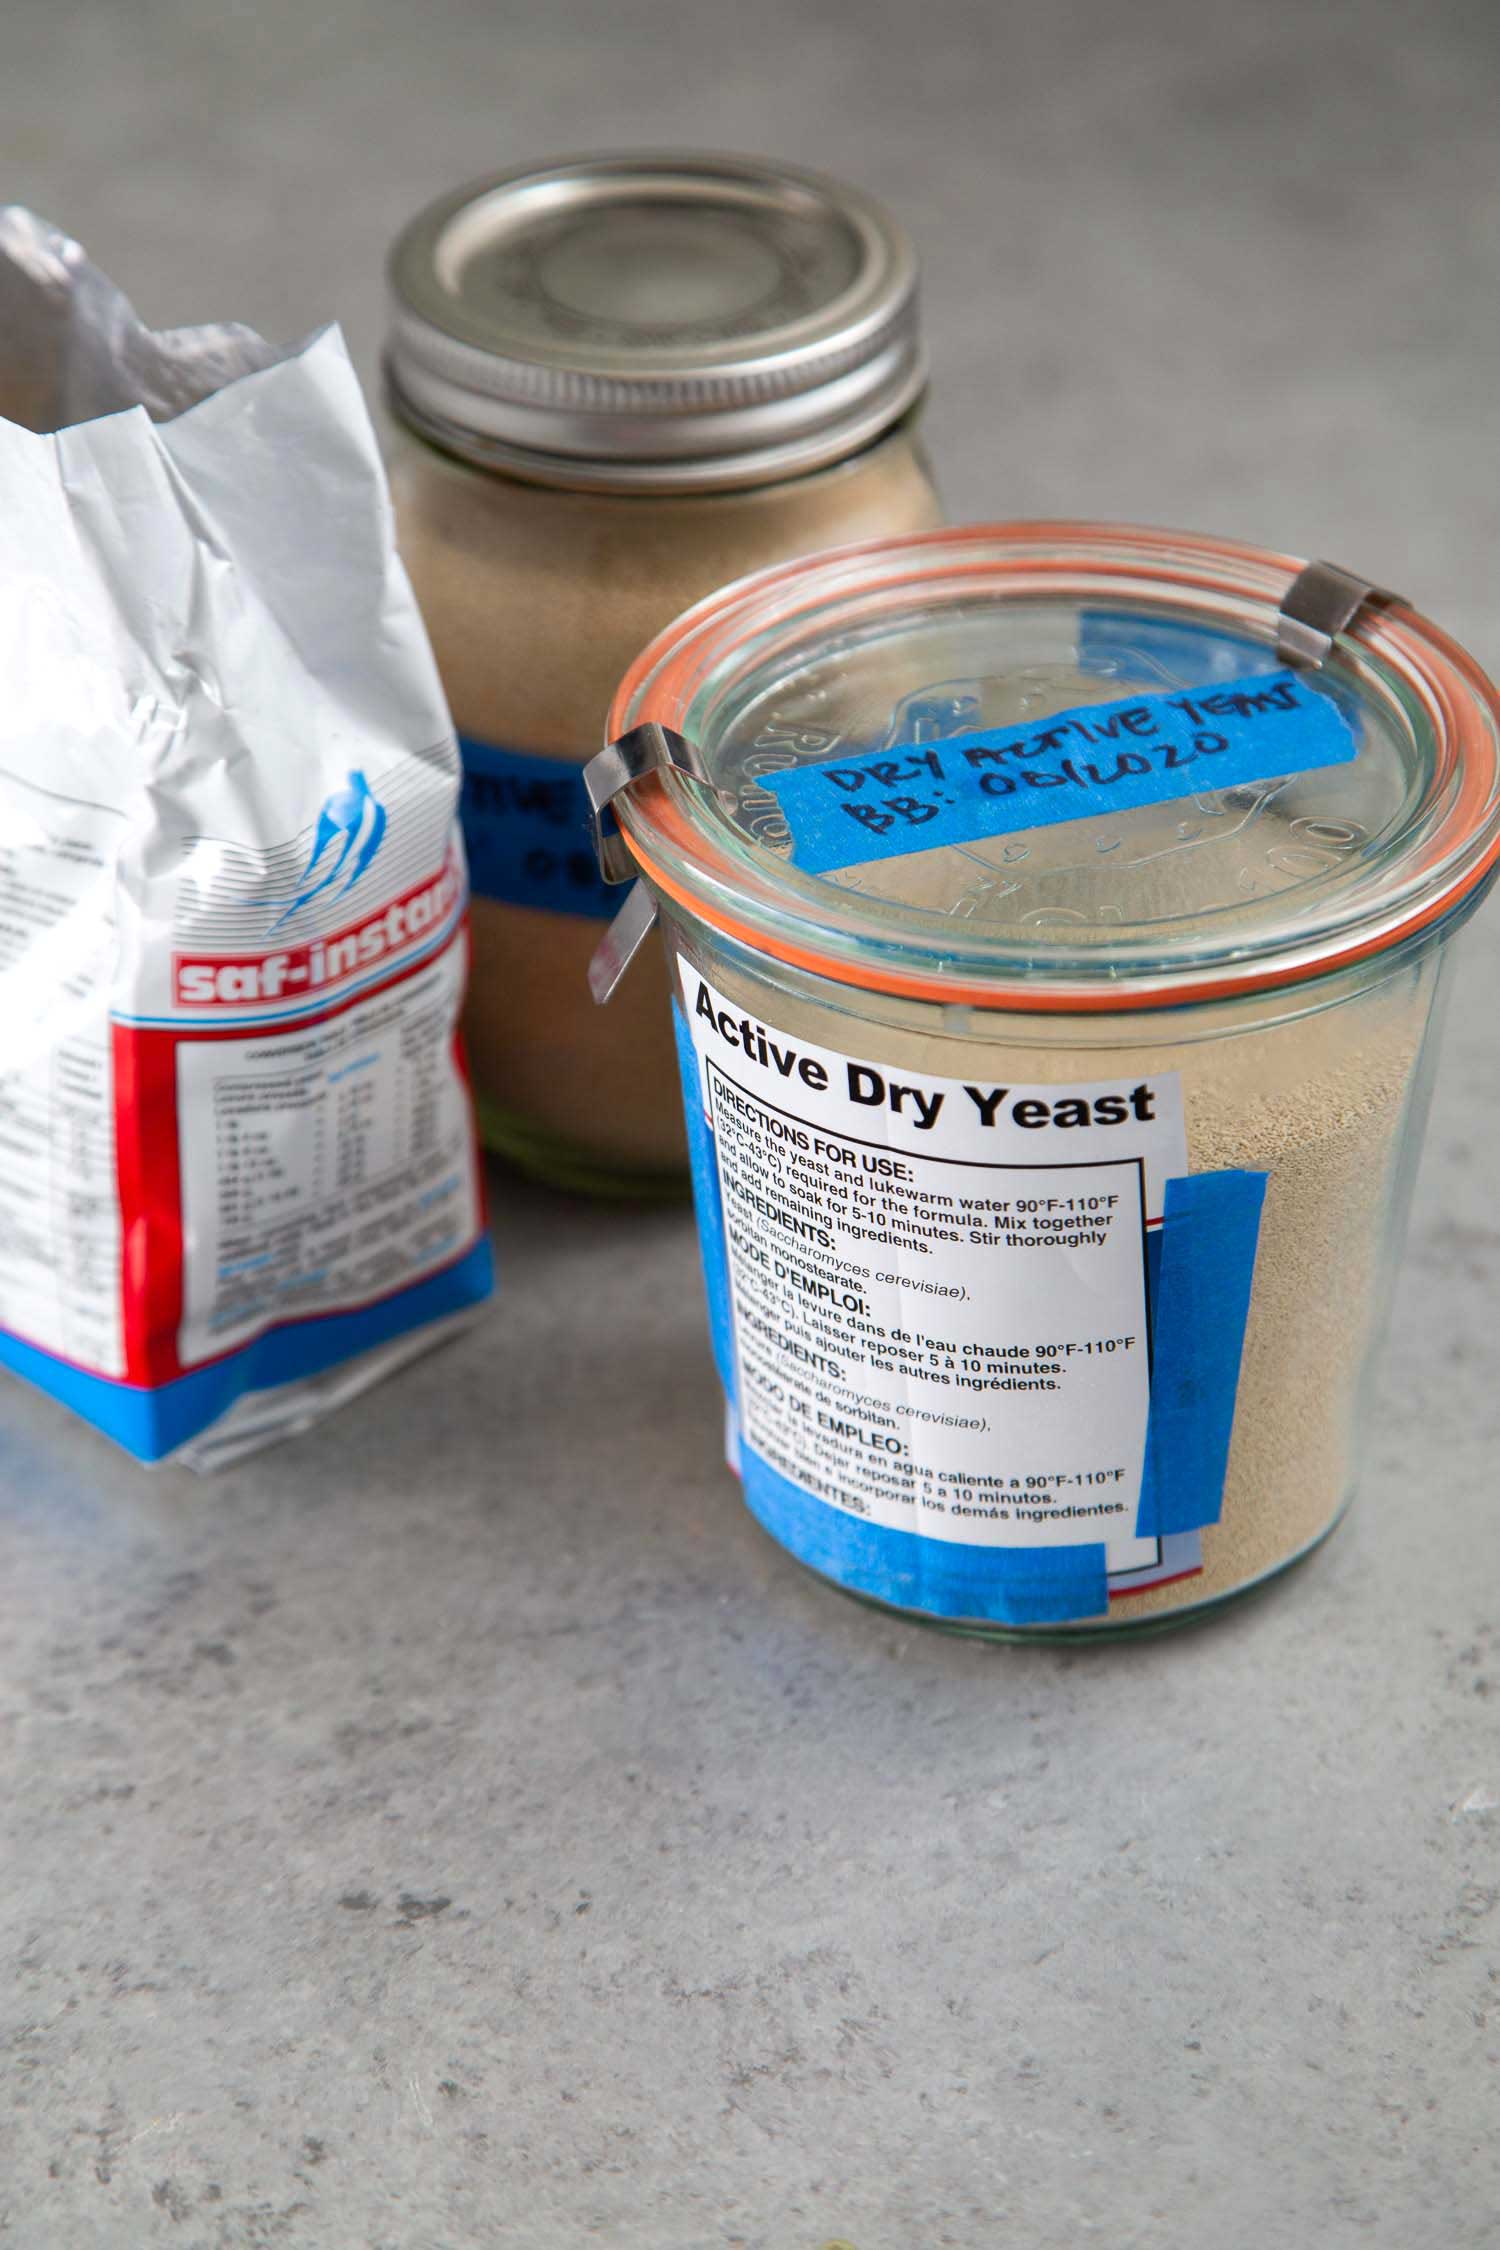 How to Store Dry Yeast